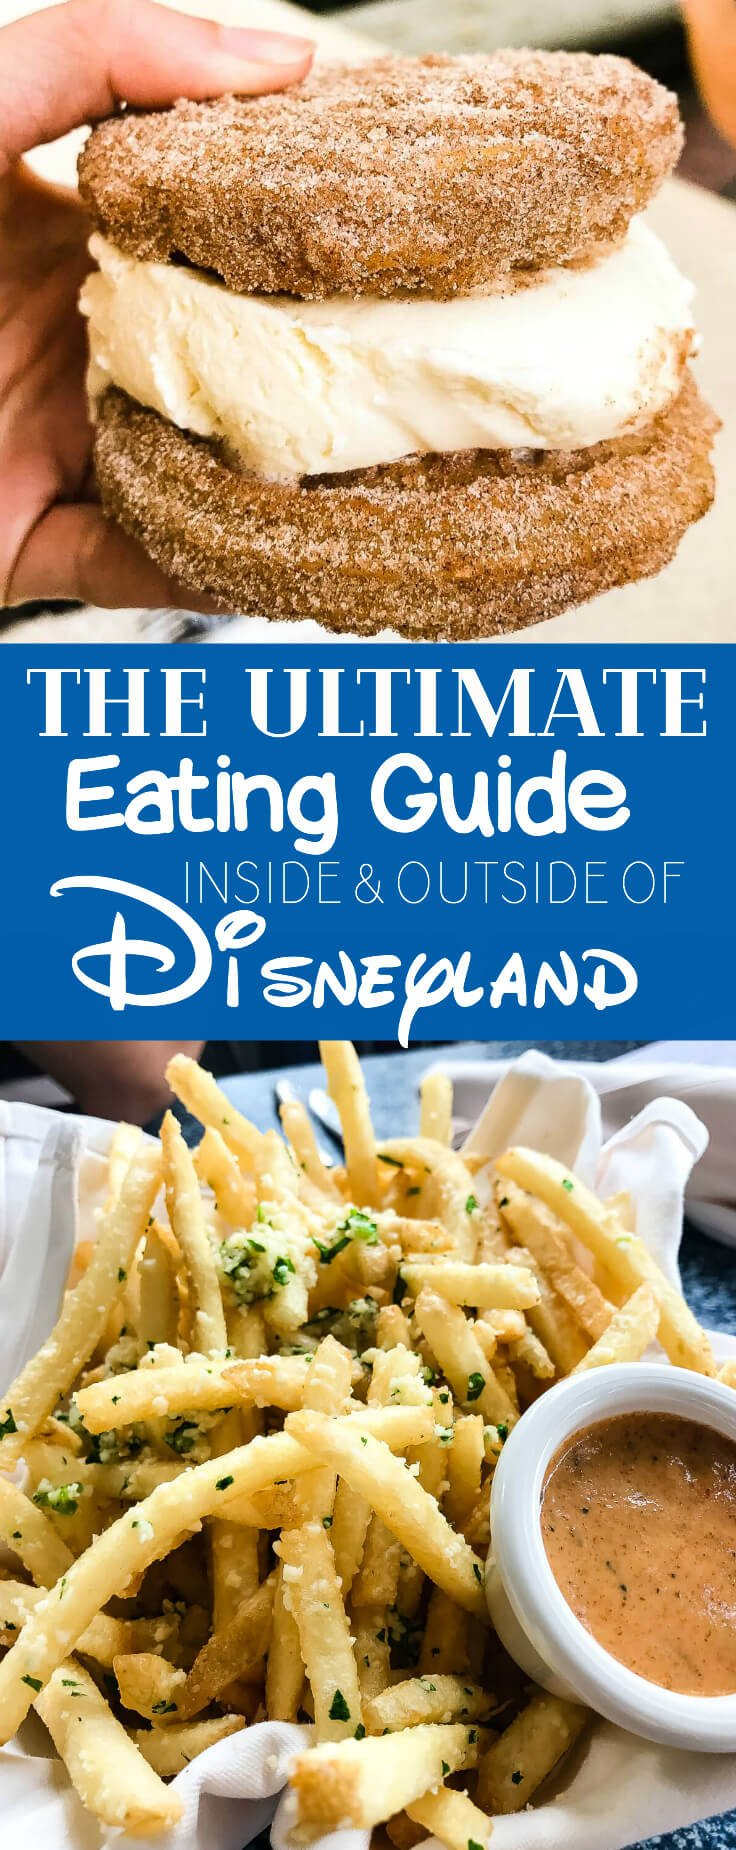 Everyone posts about food at Disneyland, but I want to know what's worth it and what's not. The Ultimate Eating Guide Inside and Outside of Disneyland.